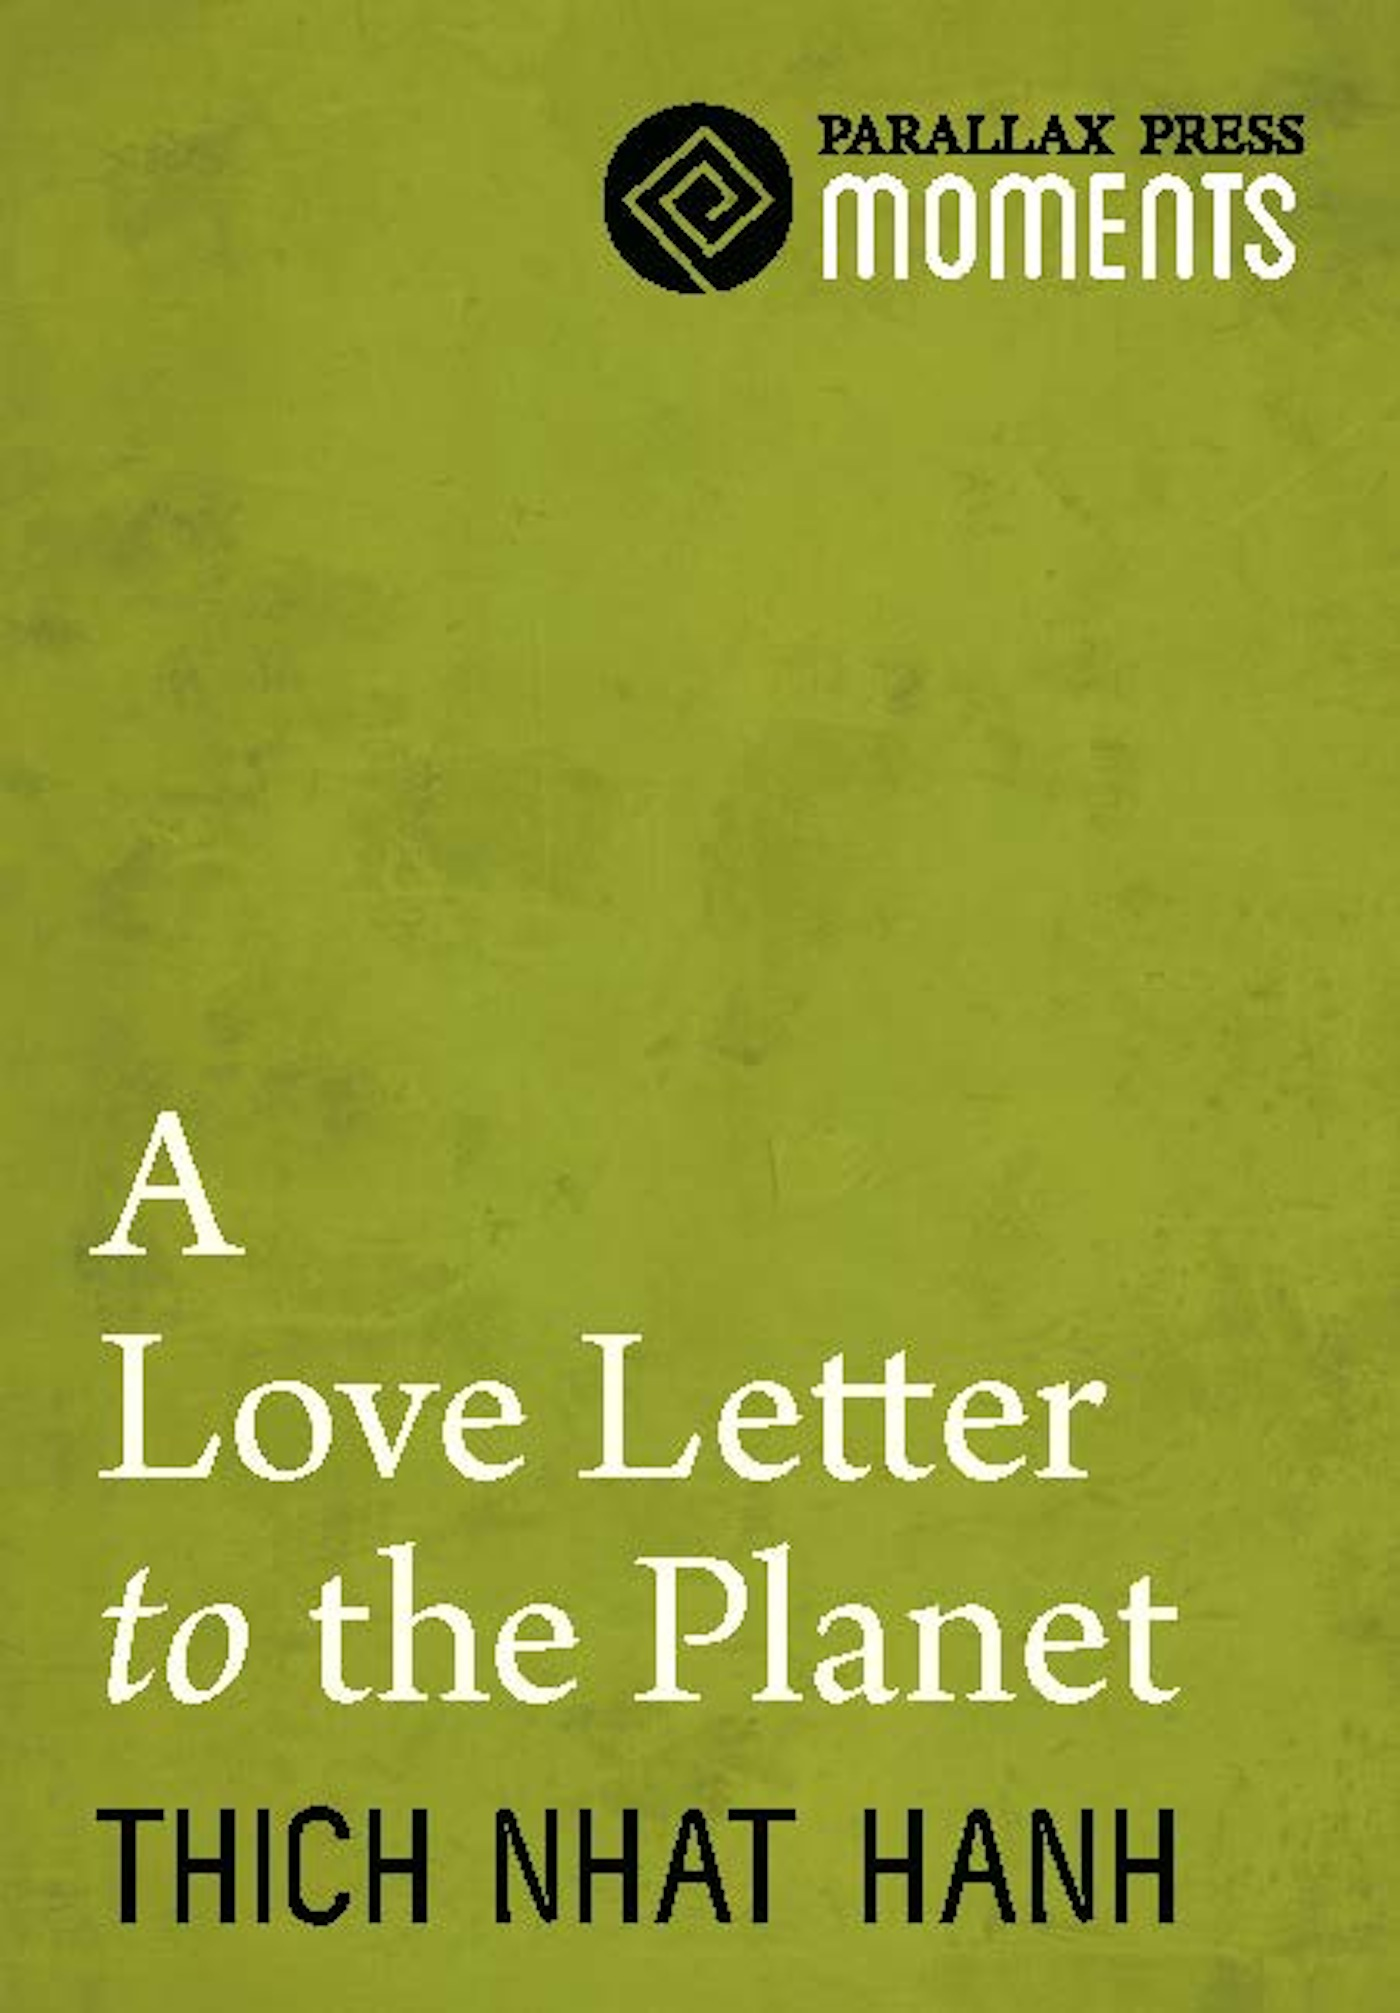 A Love Letter To The Planet By: Thich Nhat Hanh